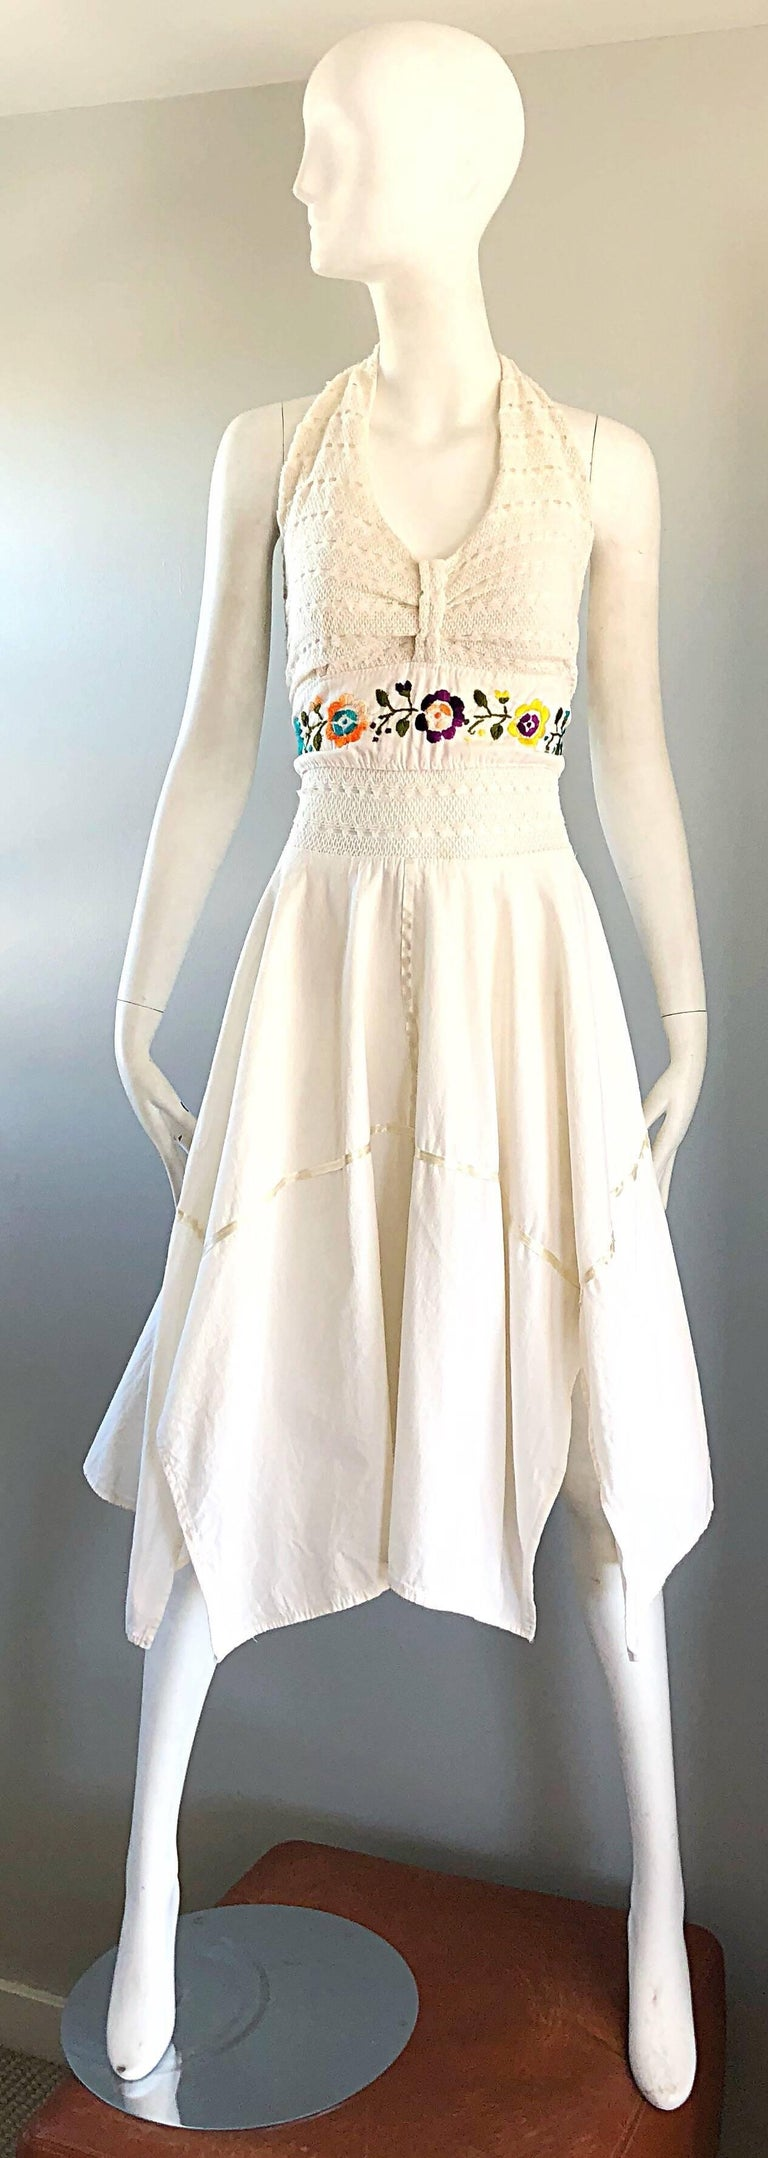 Amazing 1970s Ivory Cotton Embroidered Handkerchief Hem Vintage 70s Halter Dress For Sale 8